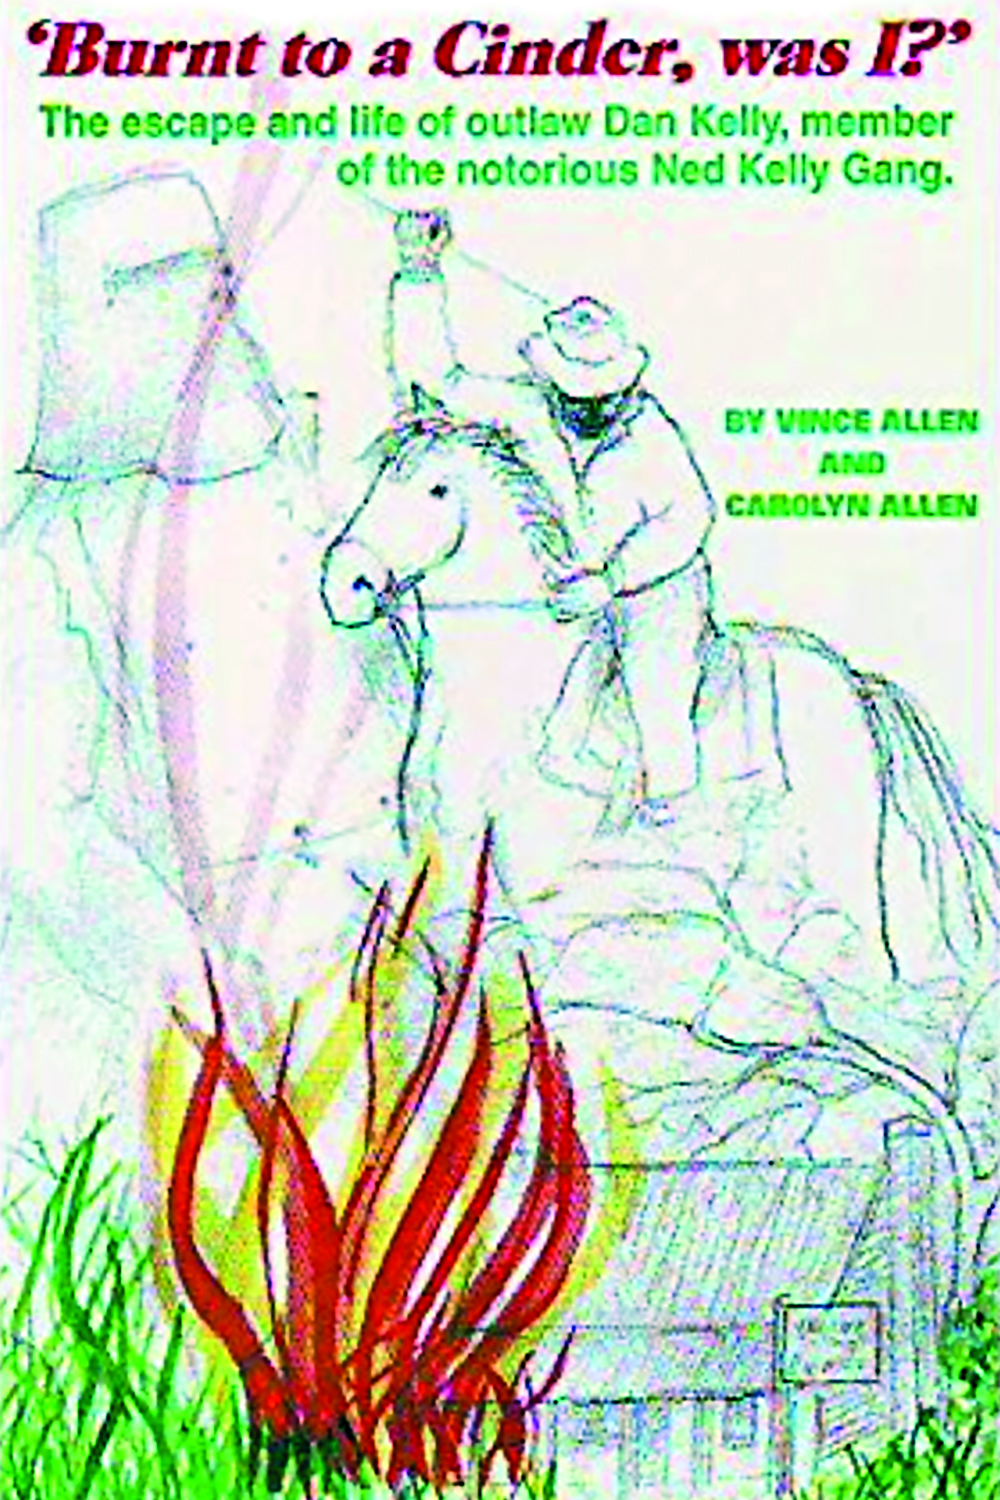 Burnt to a Cinder, Was I? by Vince and Carolyn Allen